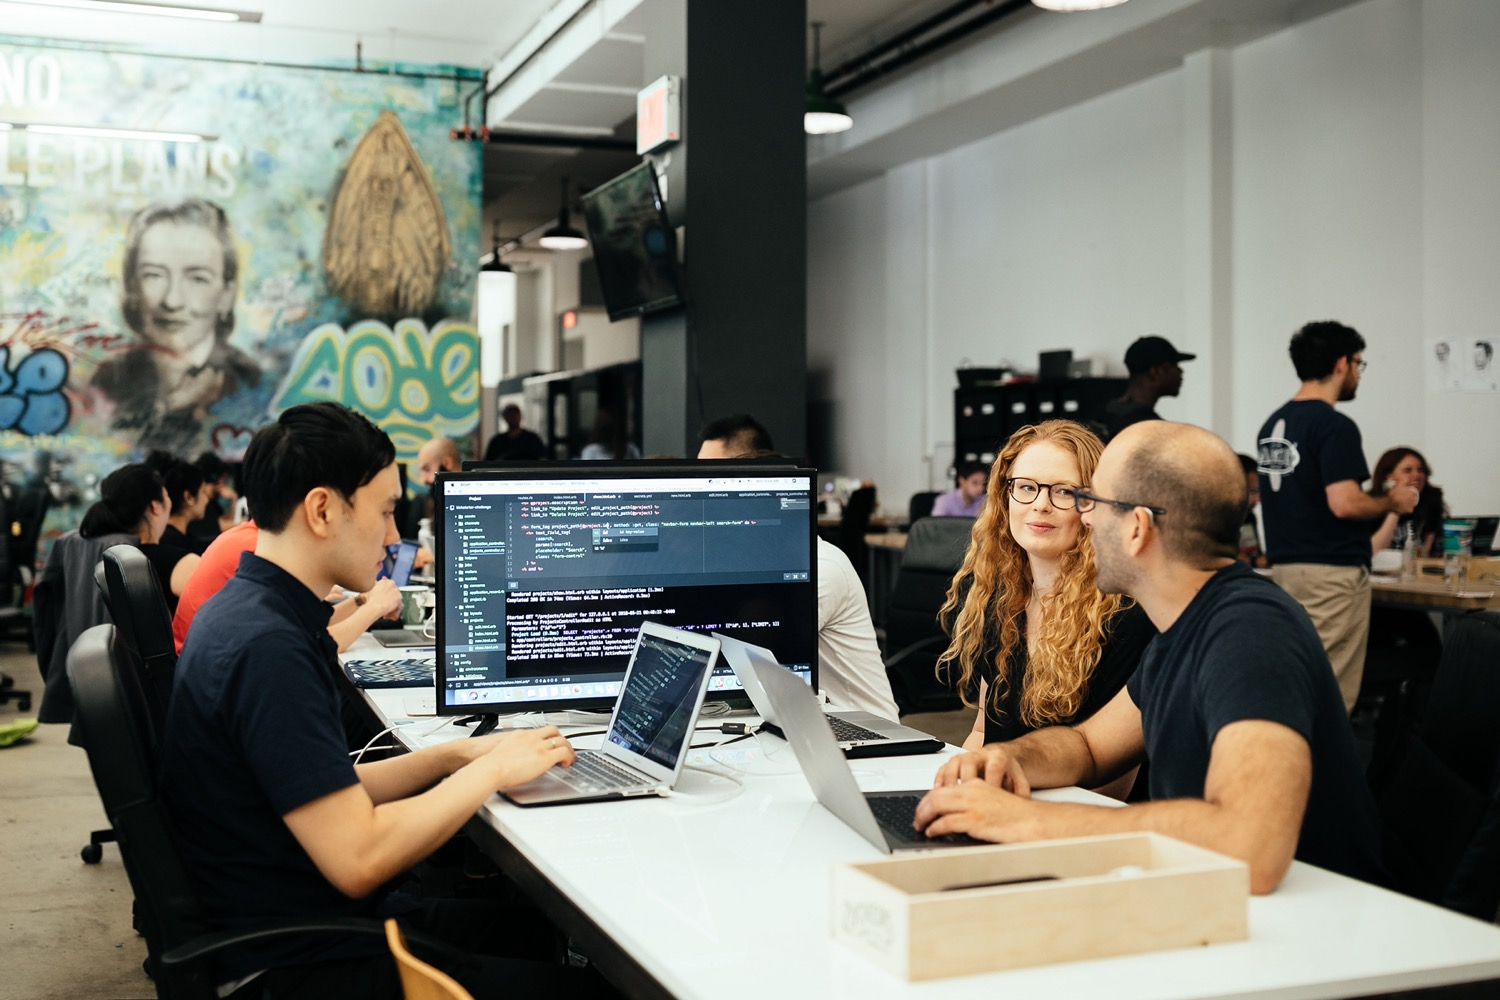 An image of people learning together at the Flatiron School